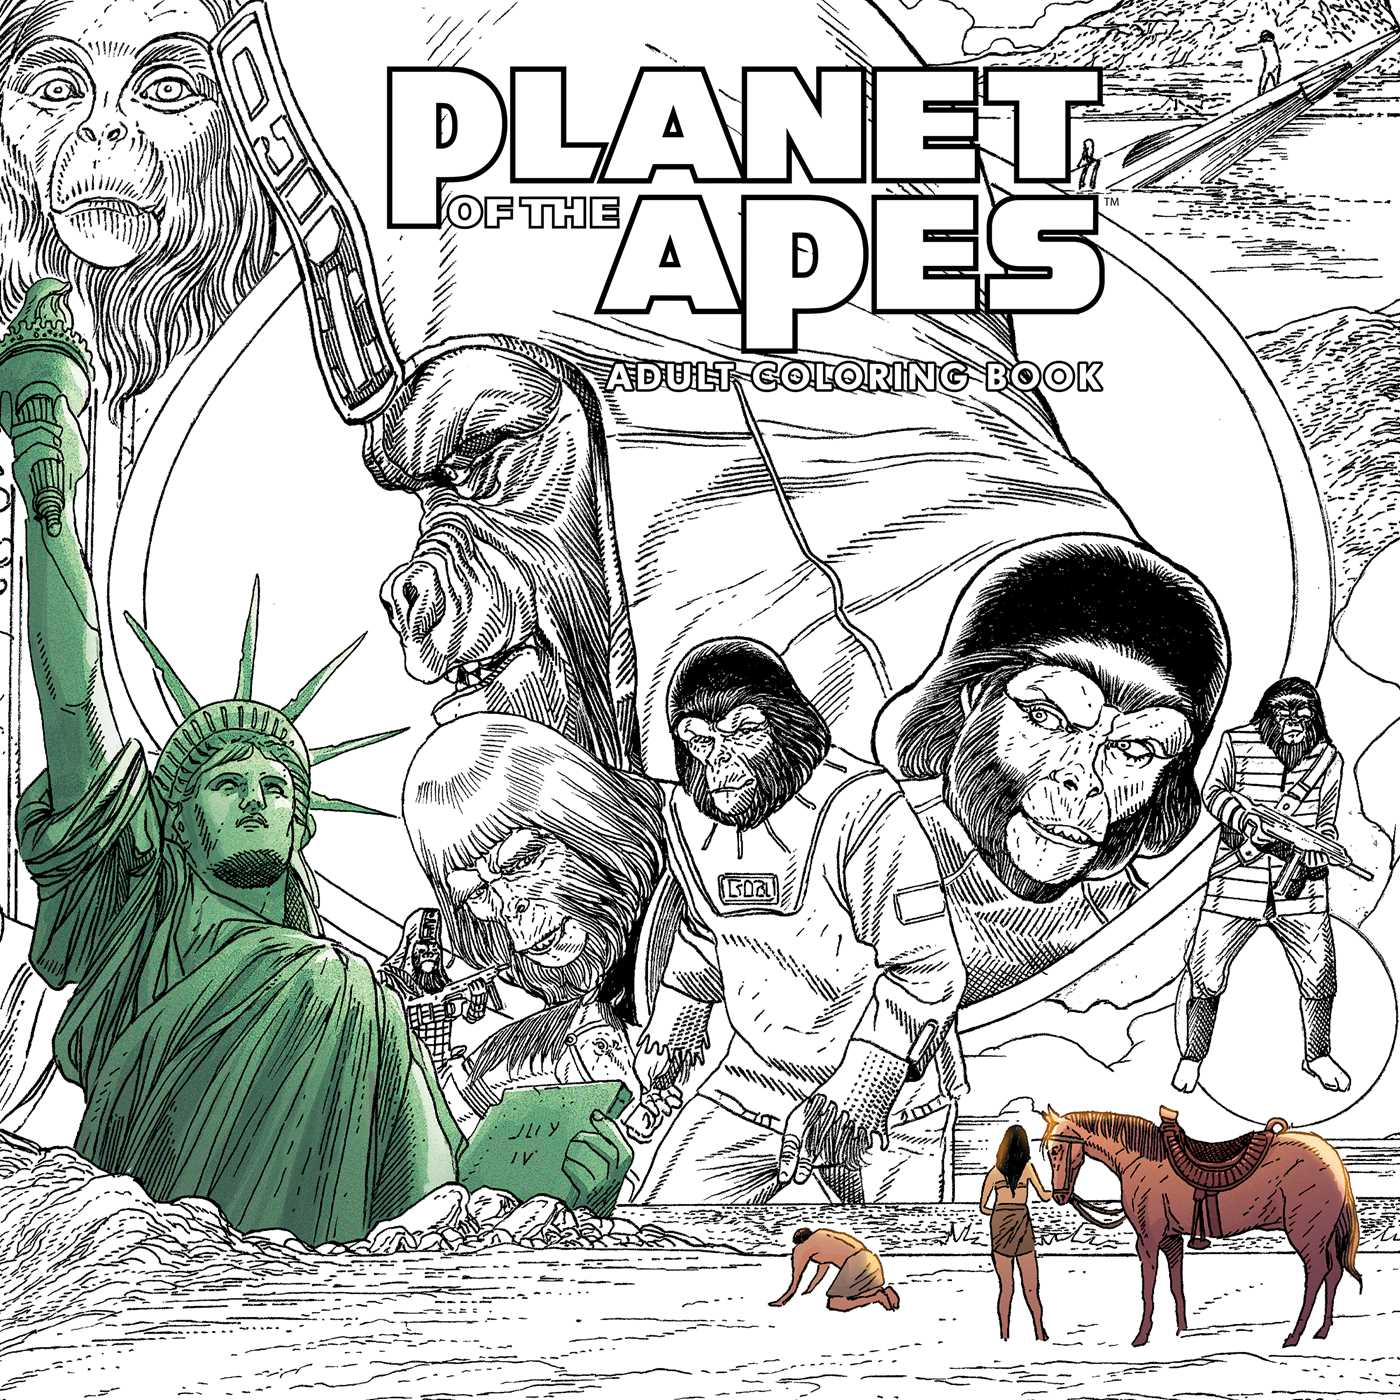 High Resolution Images Book Cover Image Jpg Planet Of The Apes Adult Coloring